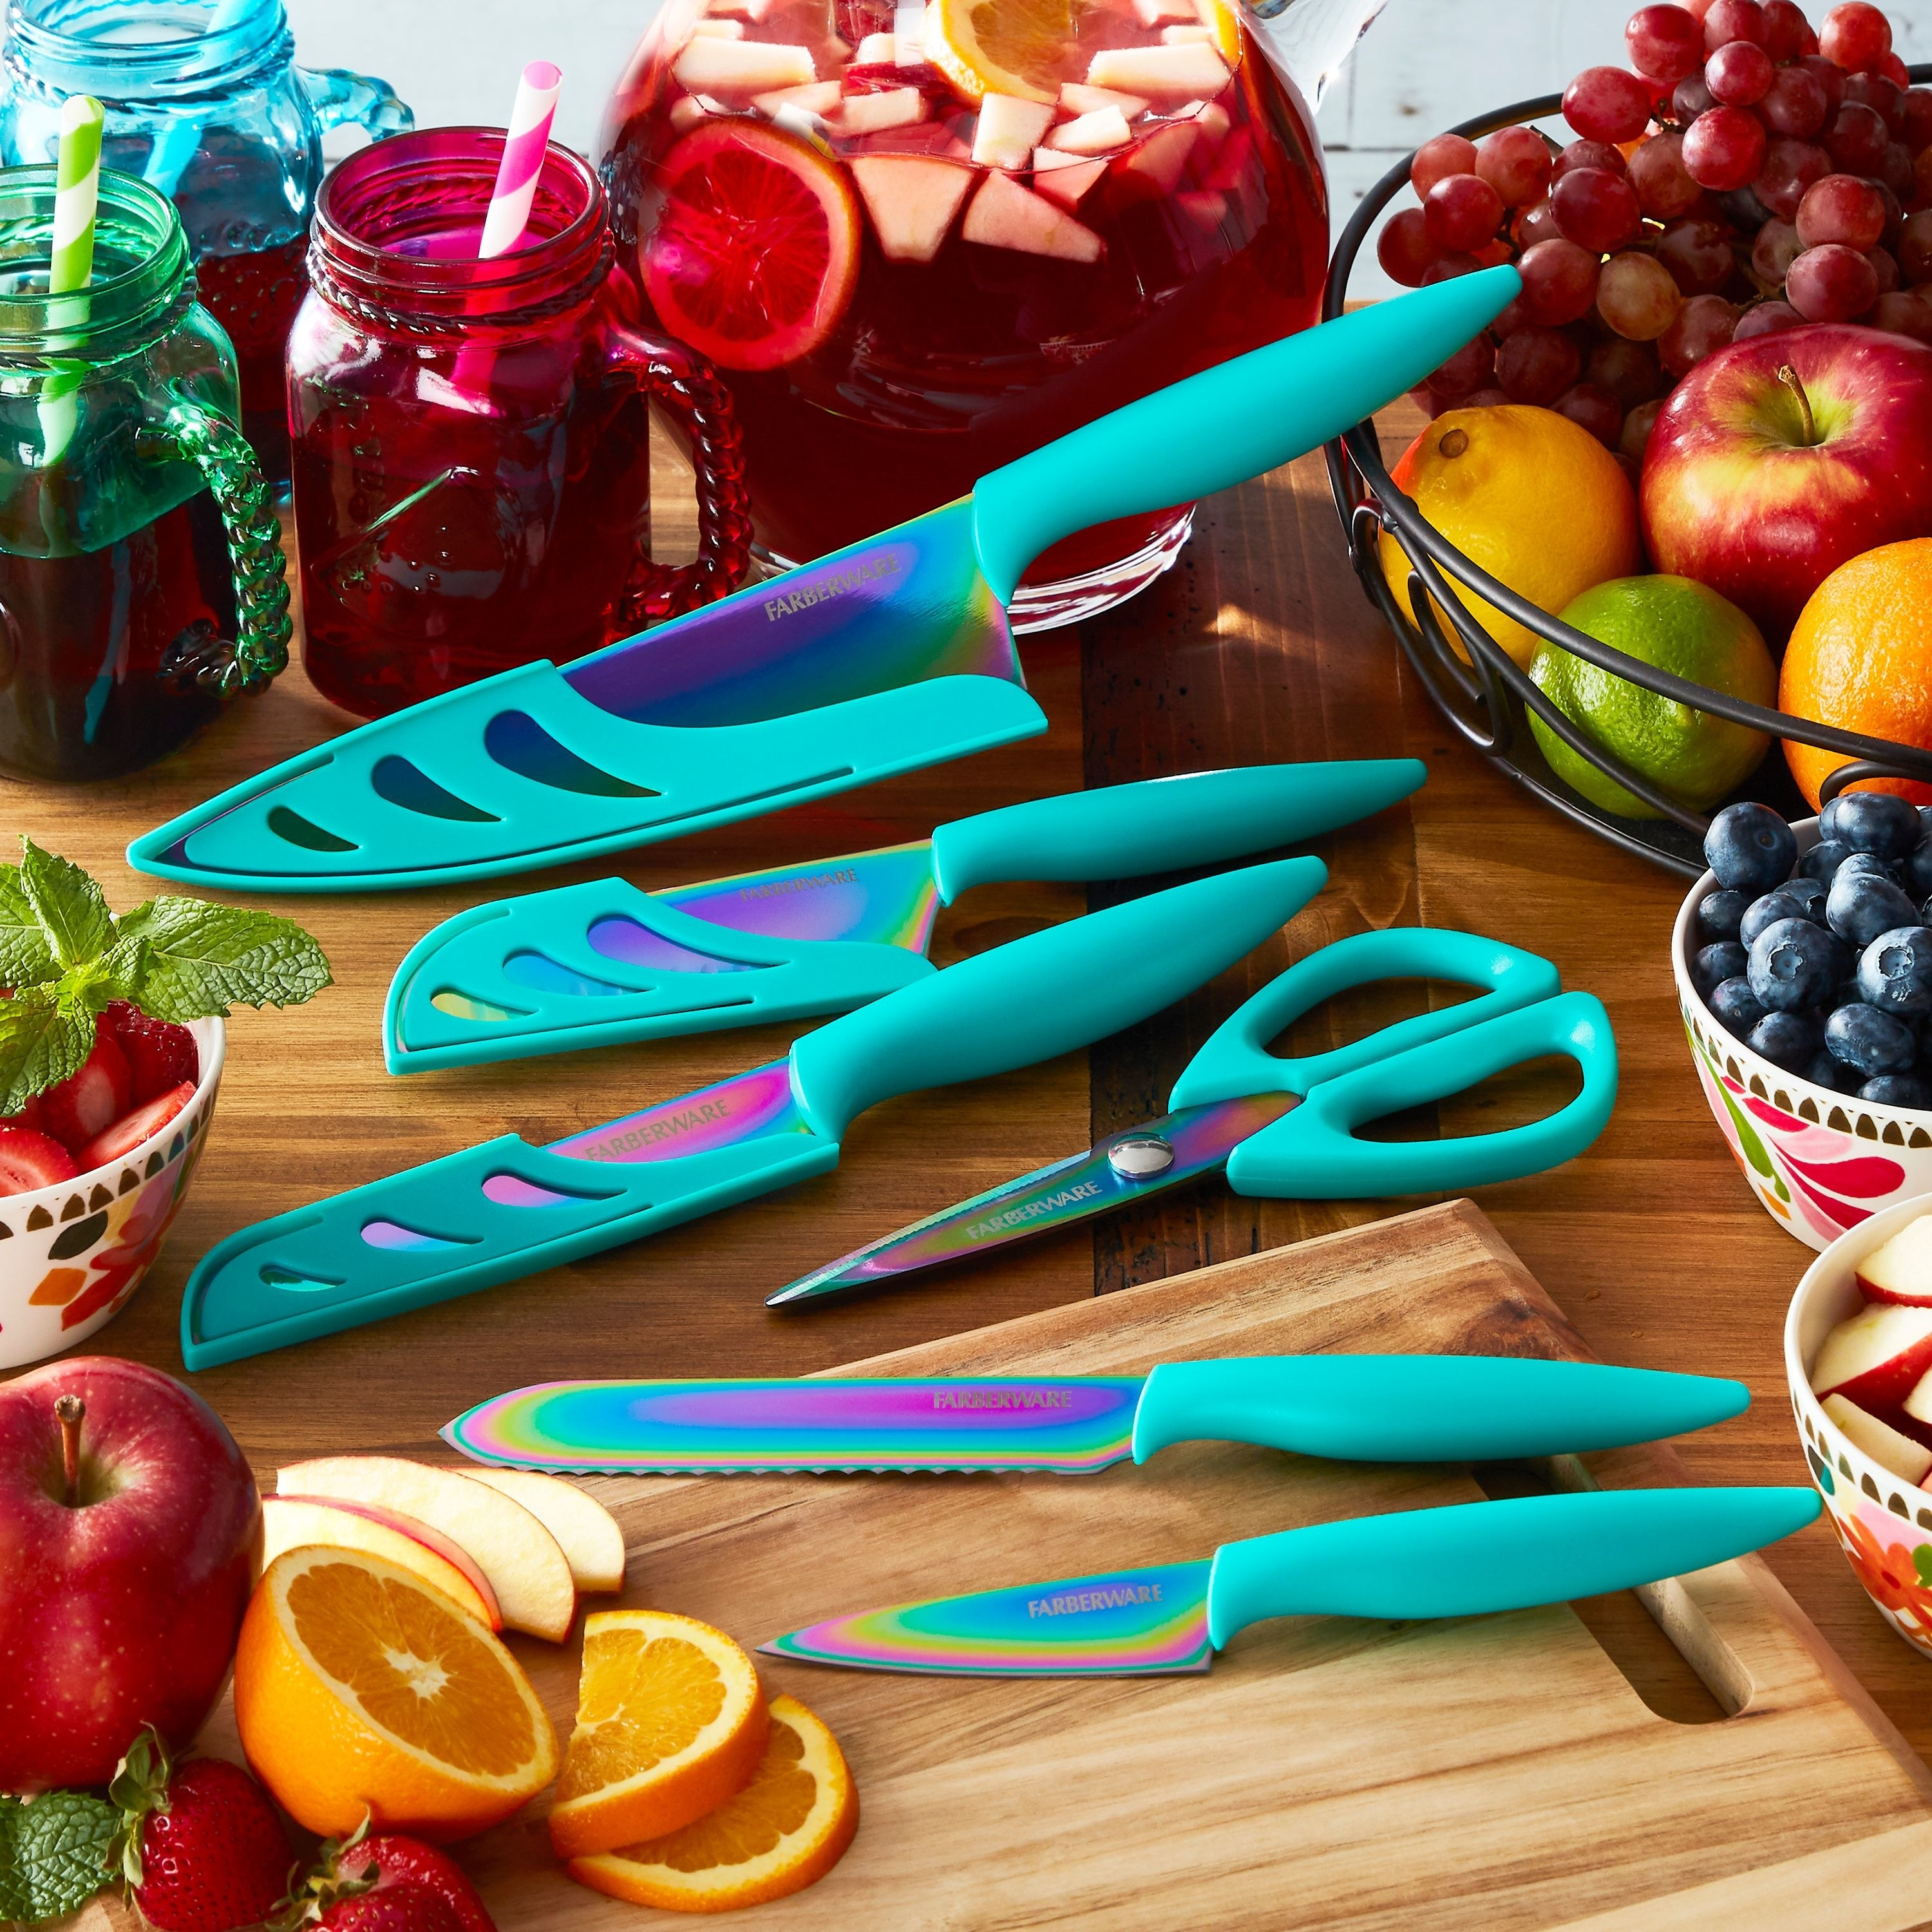 The teal and rainbow knives